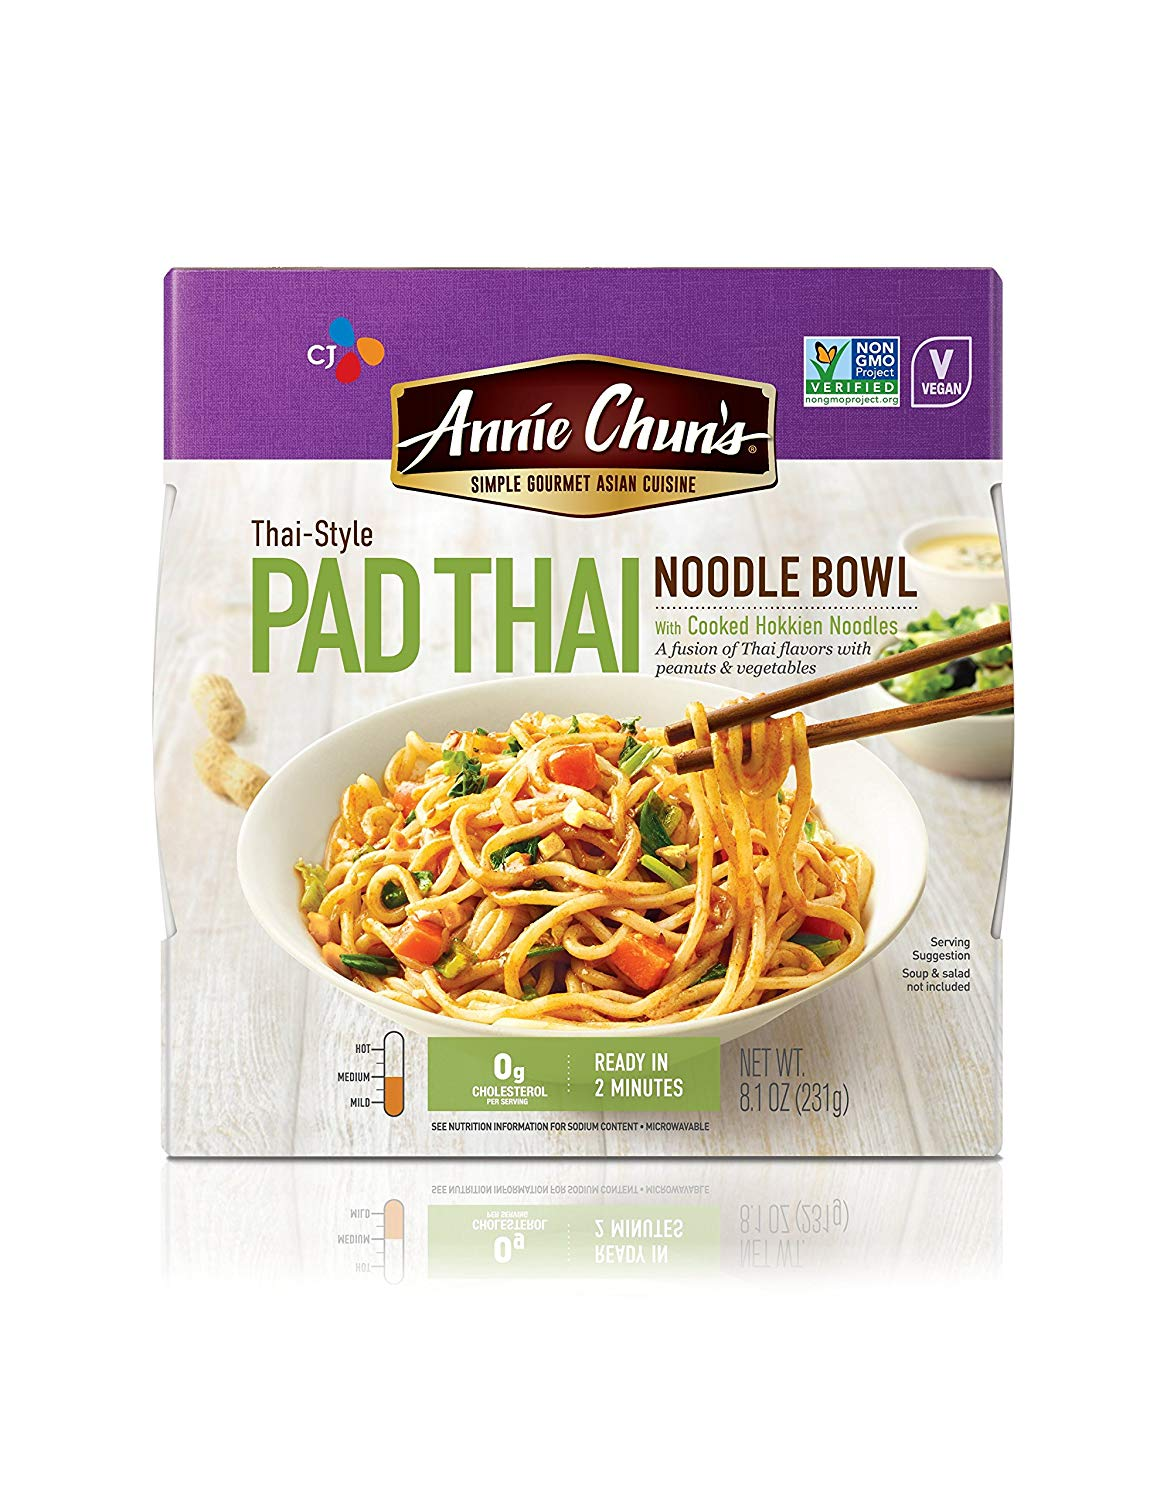 Annie Chun's Pad Thai Noodle Bowl Vegan Microwaveable Ready Meal